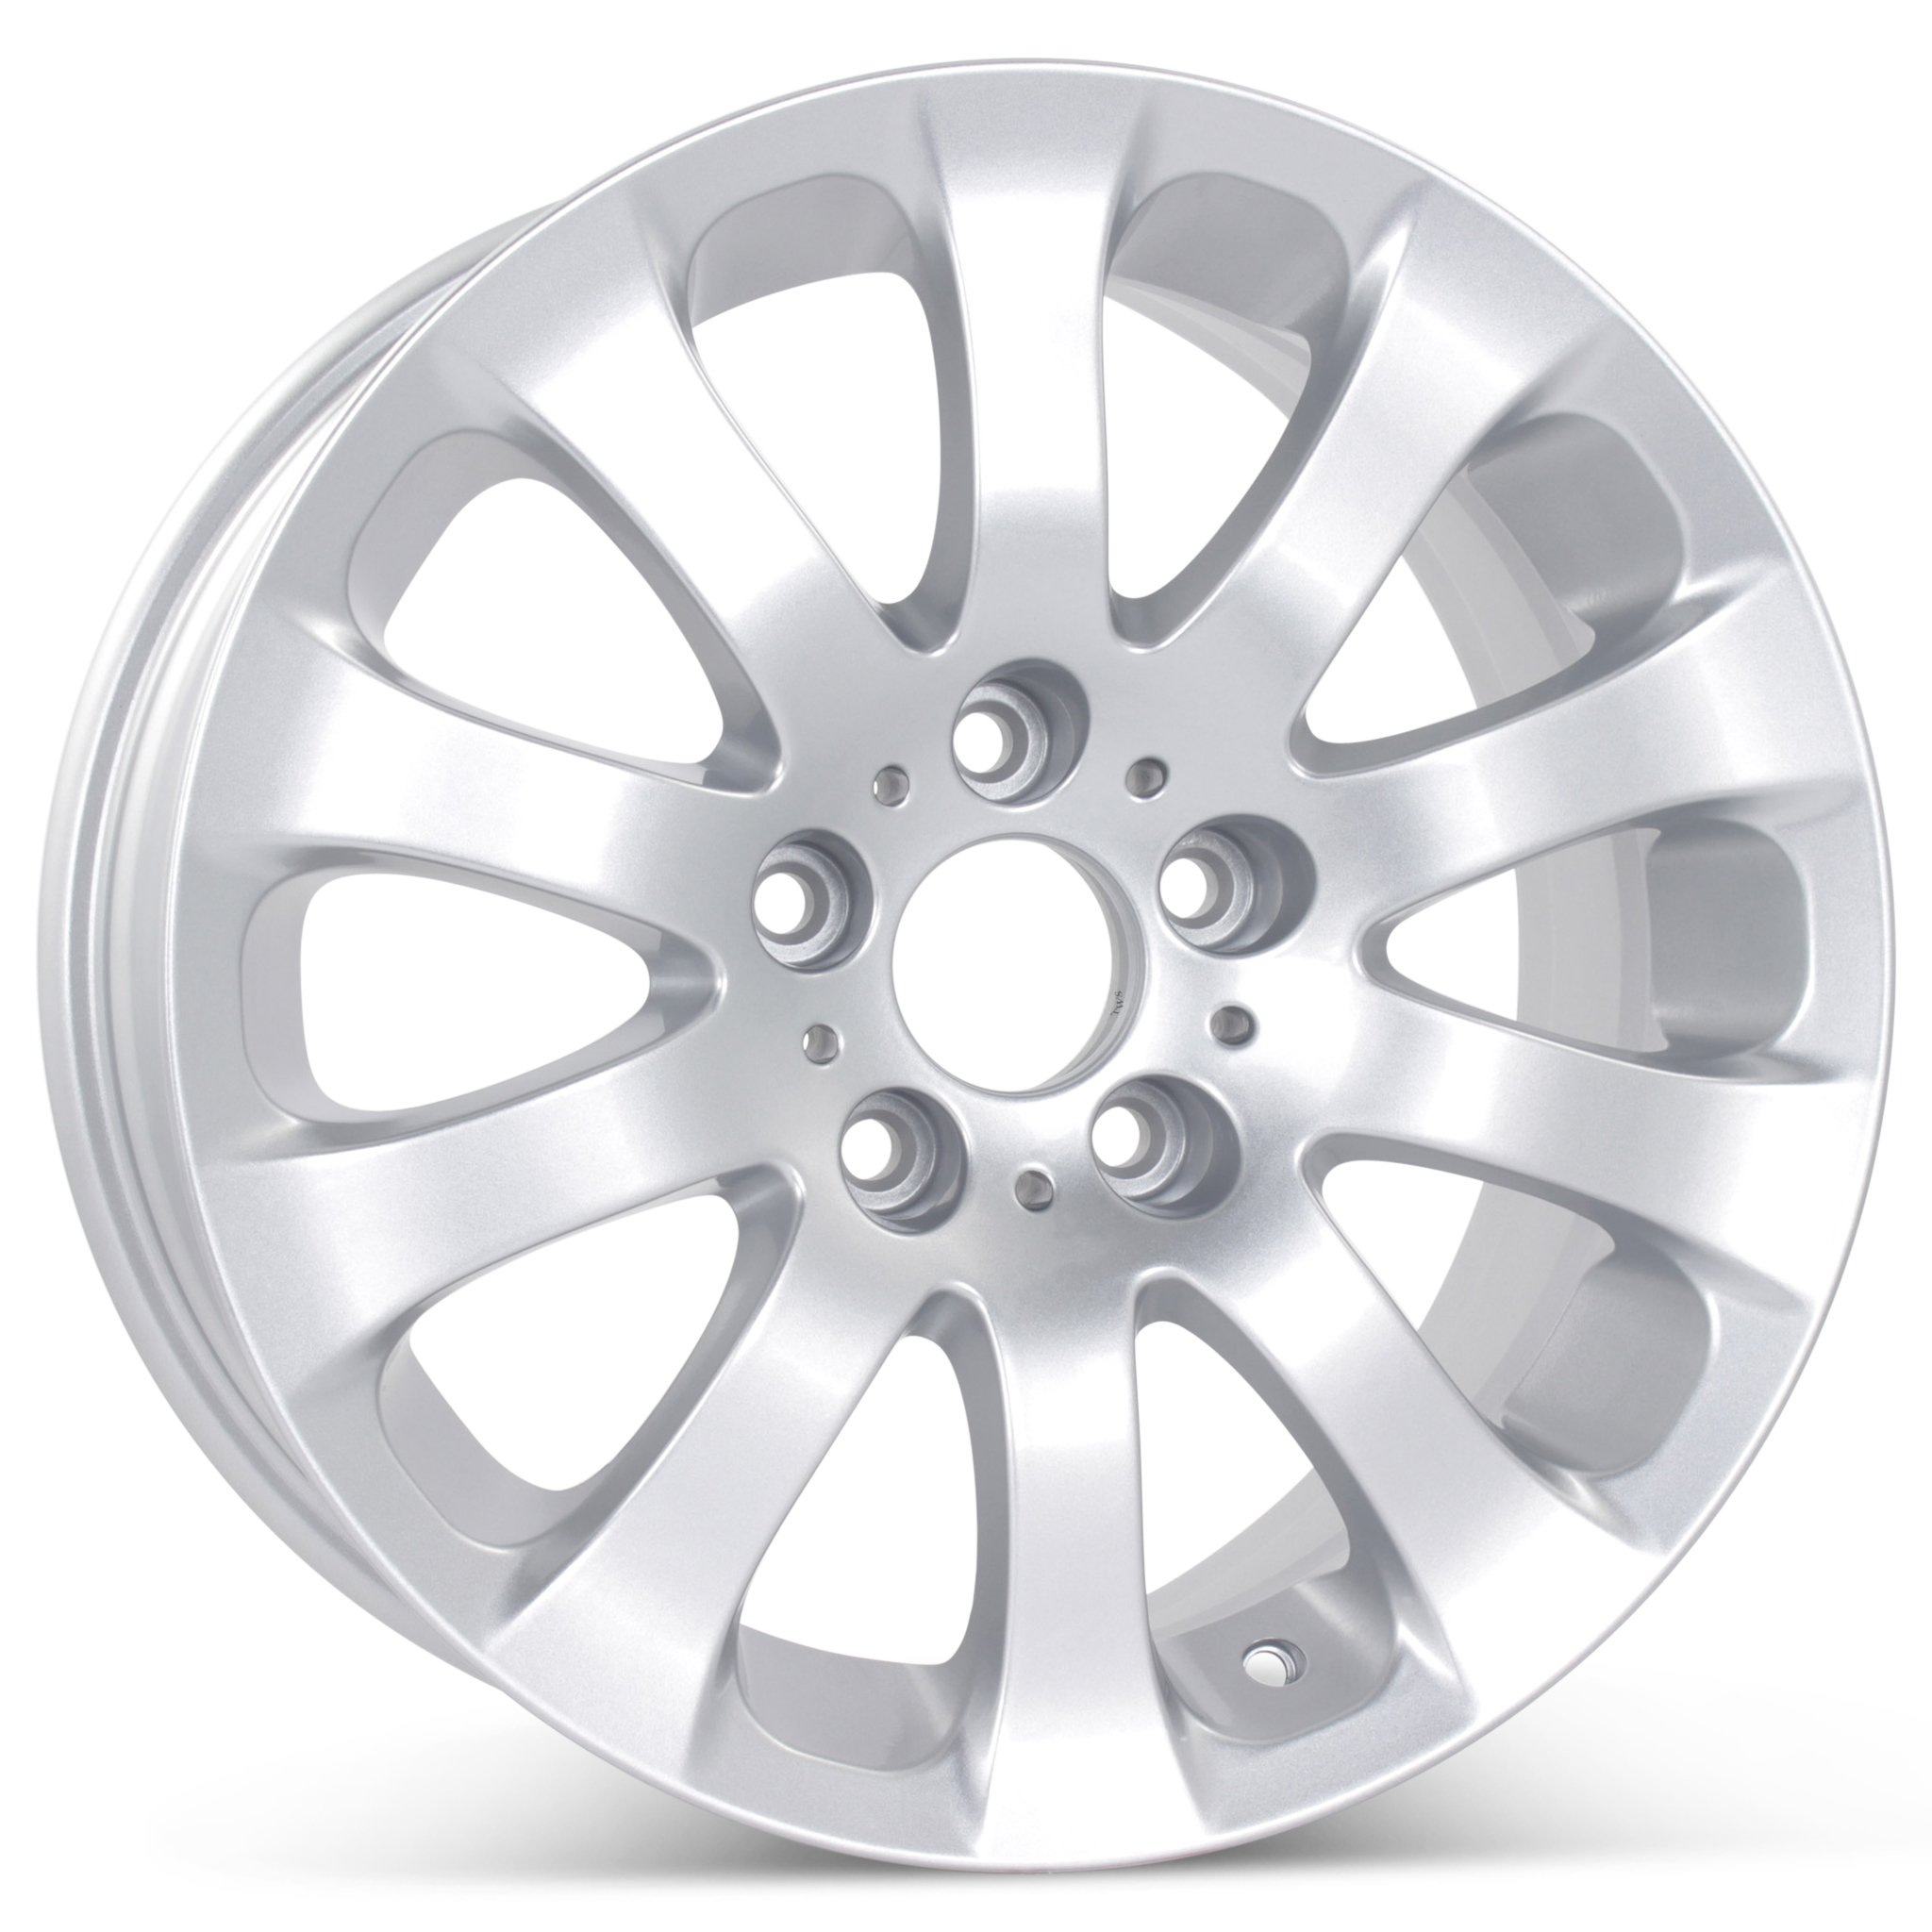 Brand New 17'' x 8'' Replacement Wheel for BMW 3 Series 2006-2013 Rim 59582